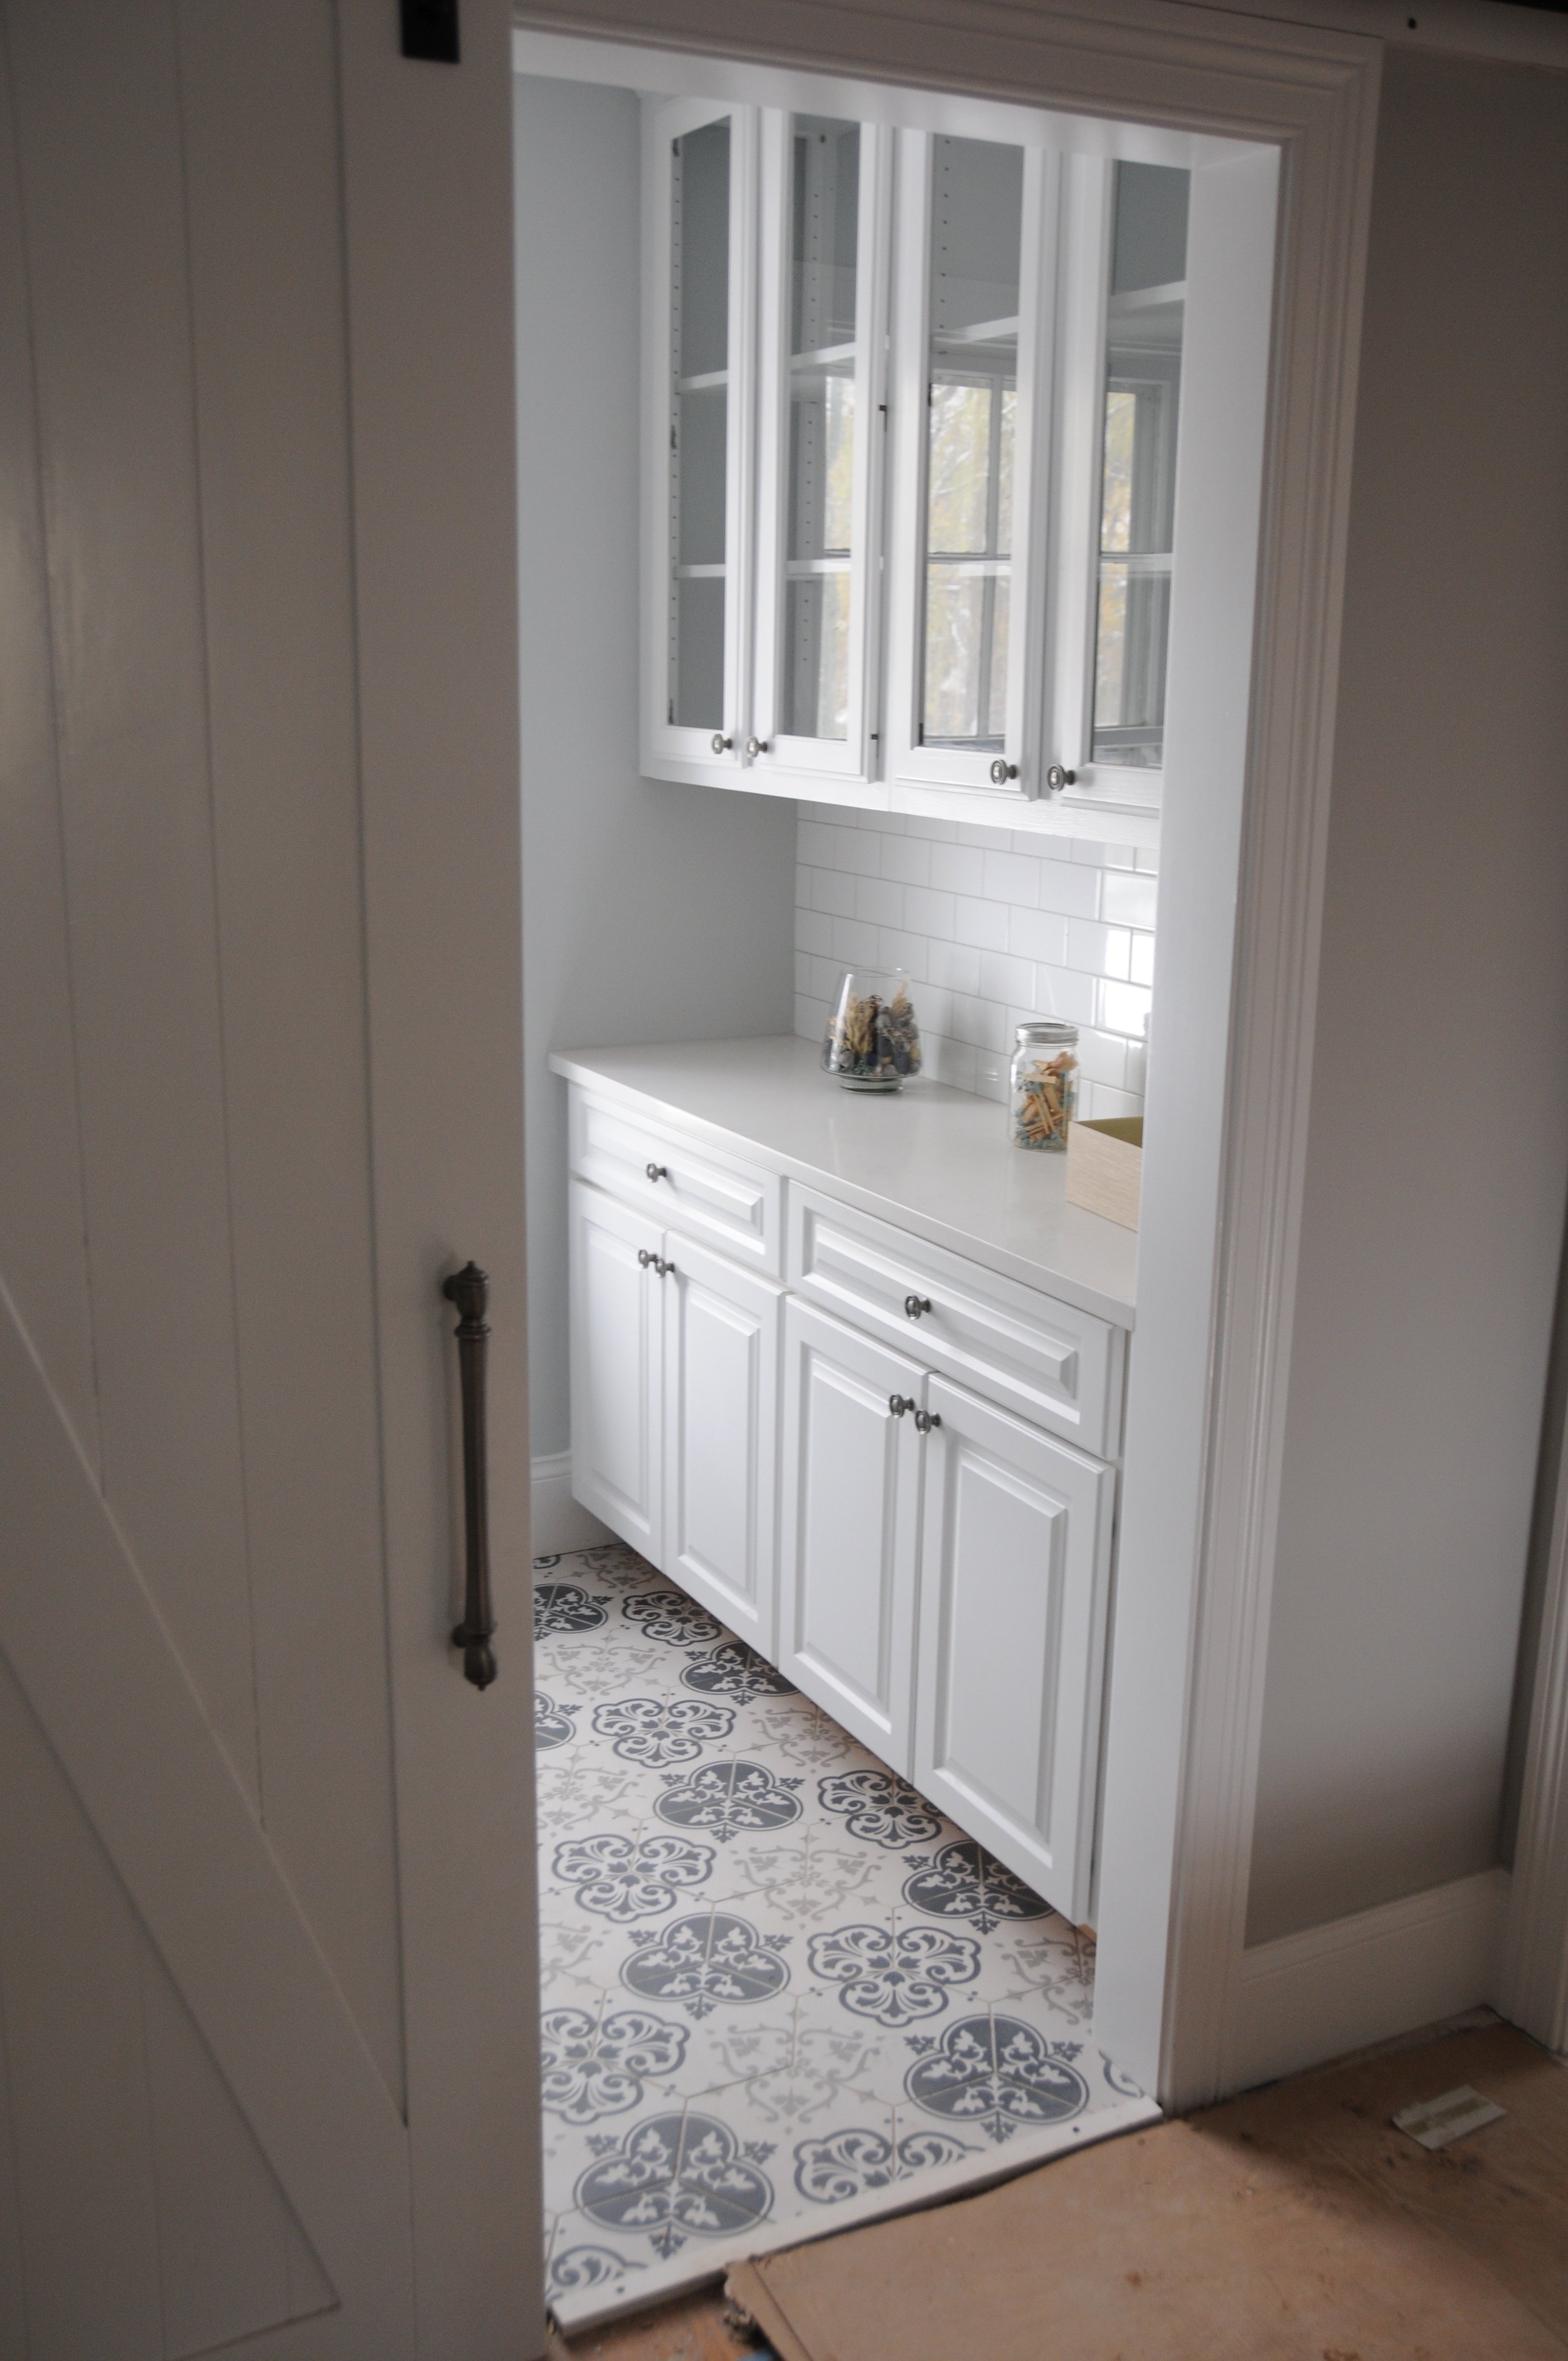 Lower and upper cabinets with a durable quartz top help make this compact laundry room punch above its weight class with regard to elegant storage. Yet another generous client donated the glass door cabinets, and repurposing them here was better than sending them to the landfill.